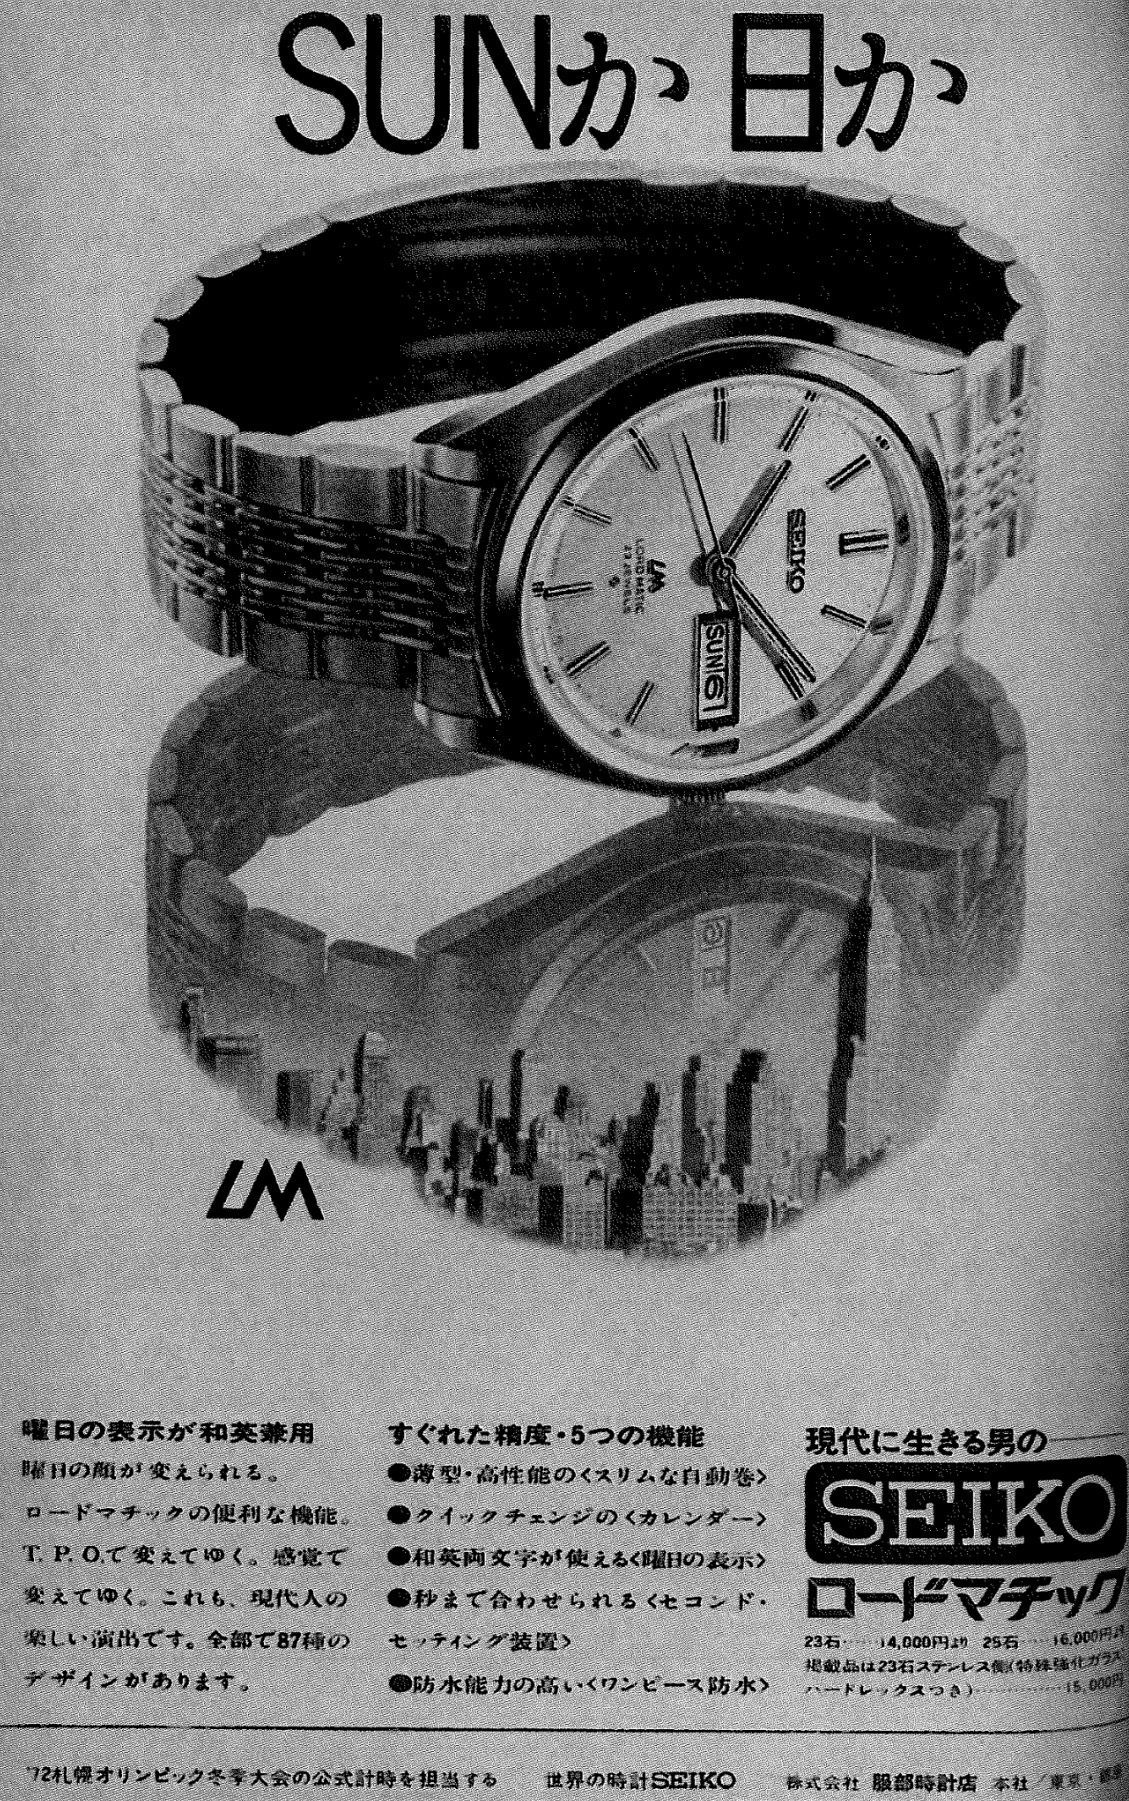 Seiko LM Advert 1